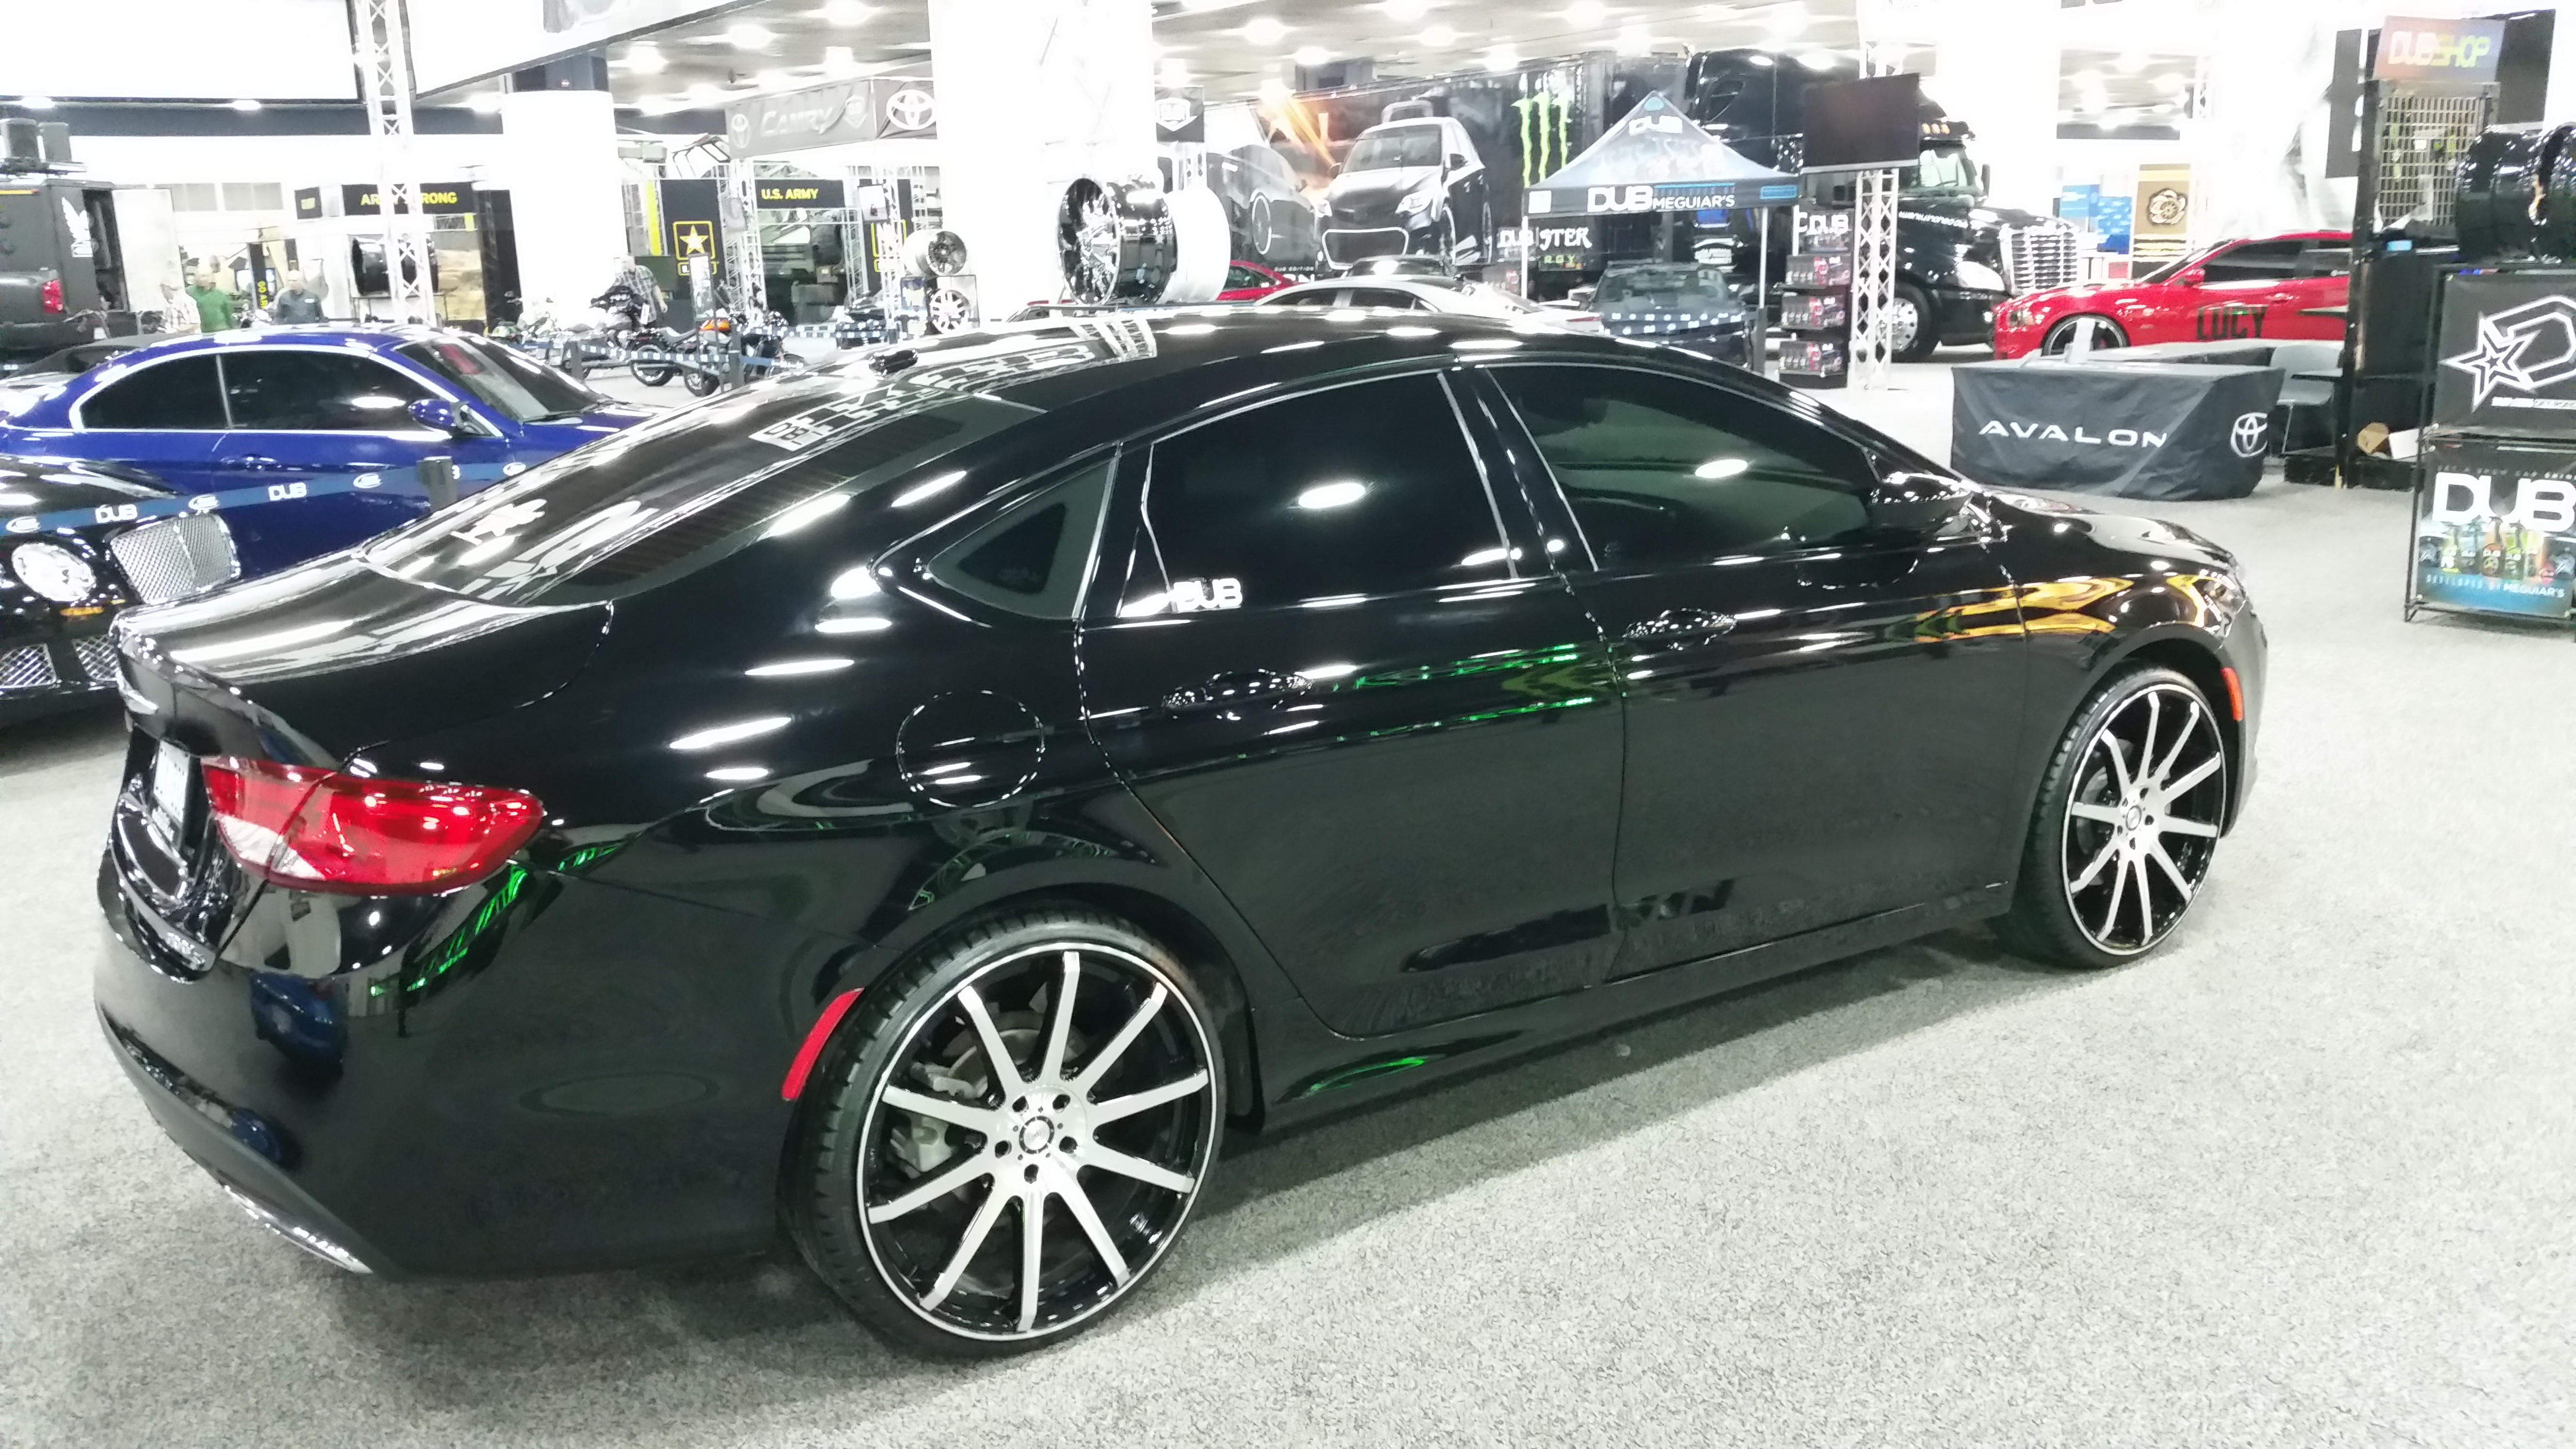 2015 AUTO SHOW PICTURES - Photo Gallery